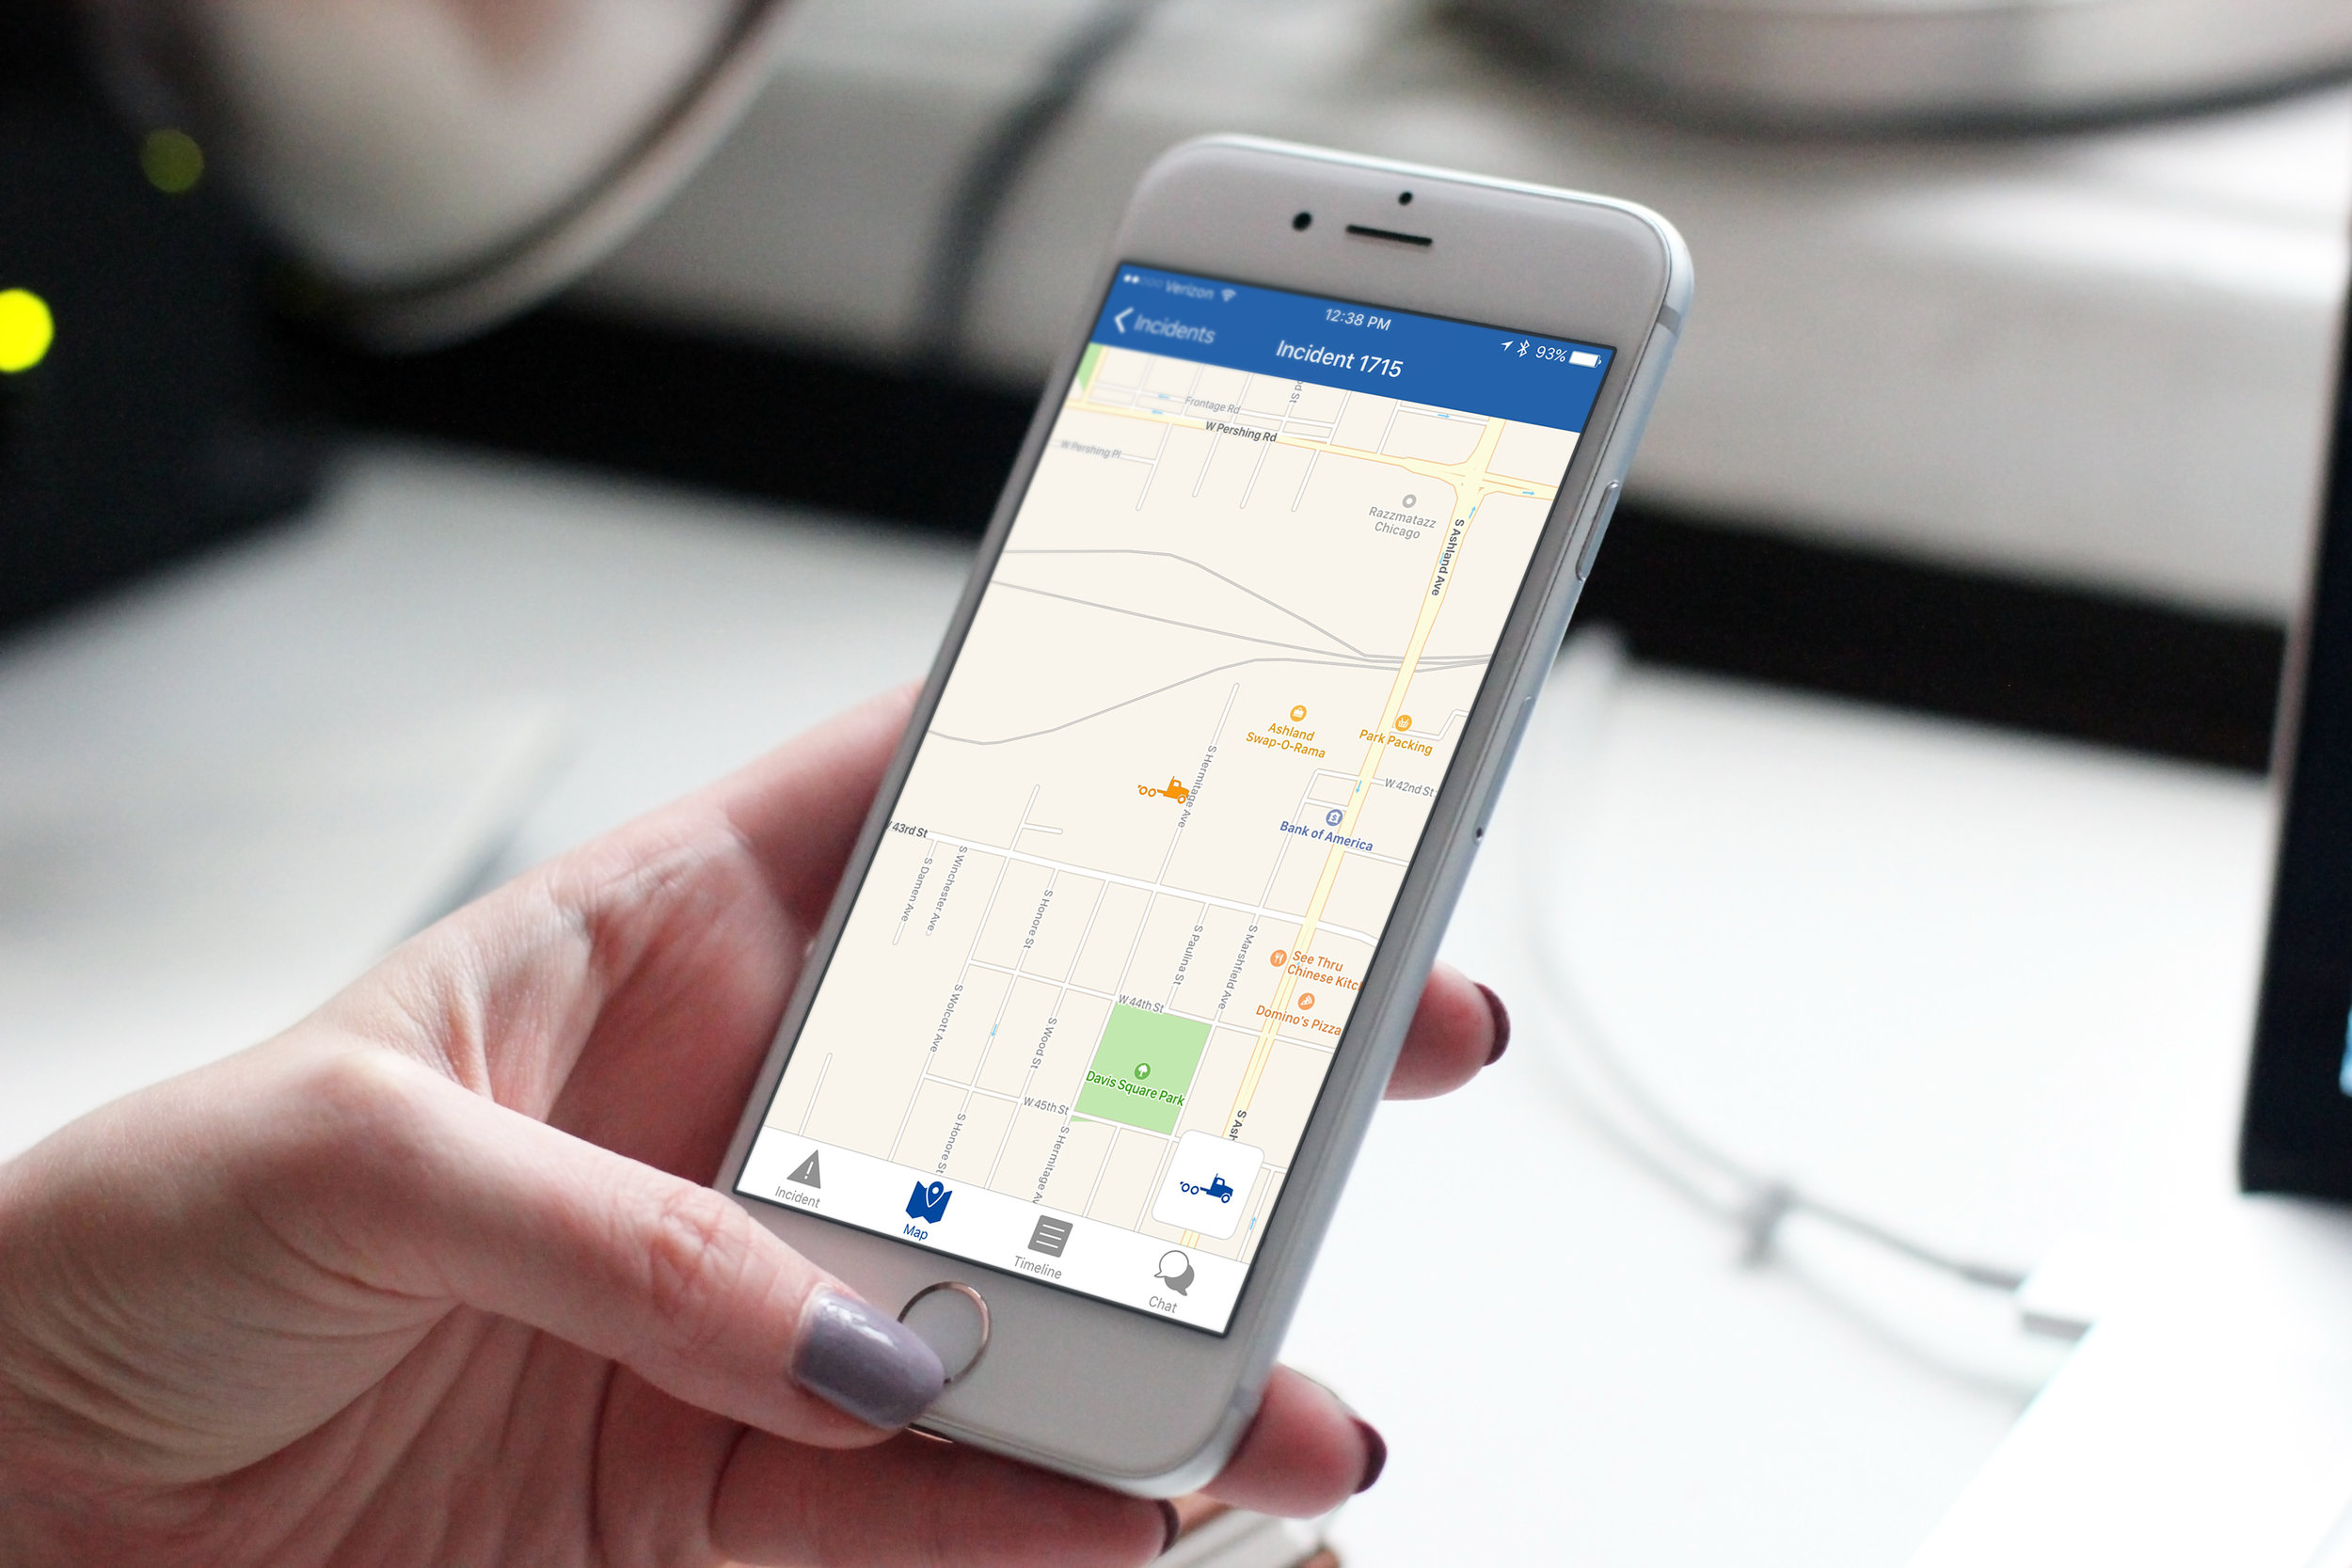 Vendors will know exactly where they are, through the RoadStar app